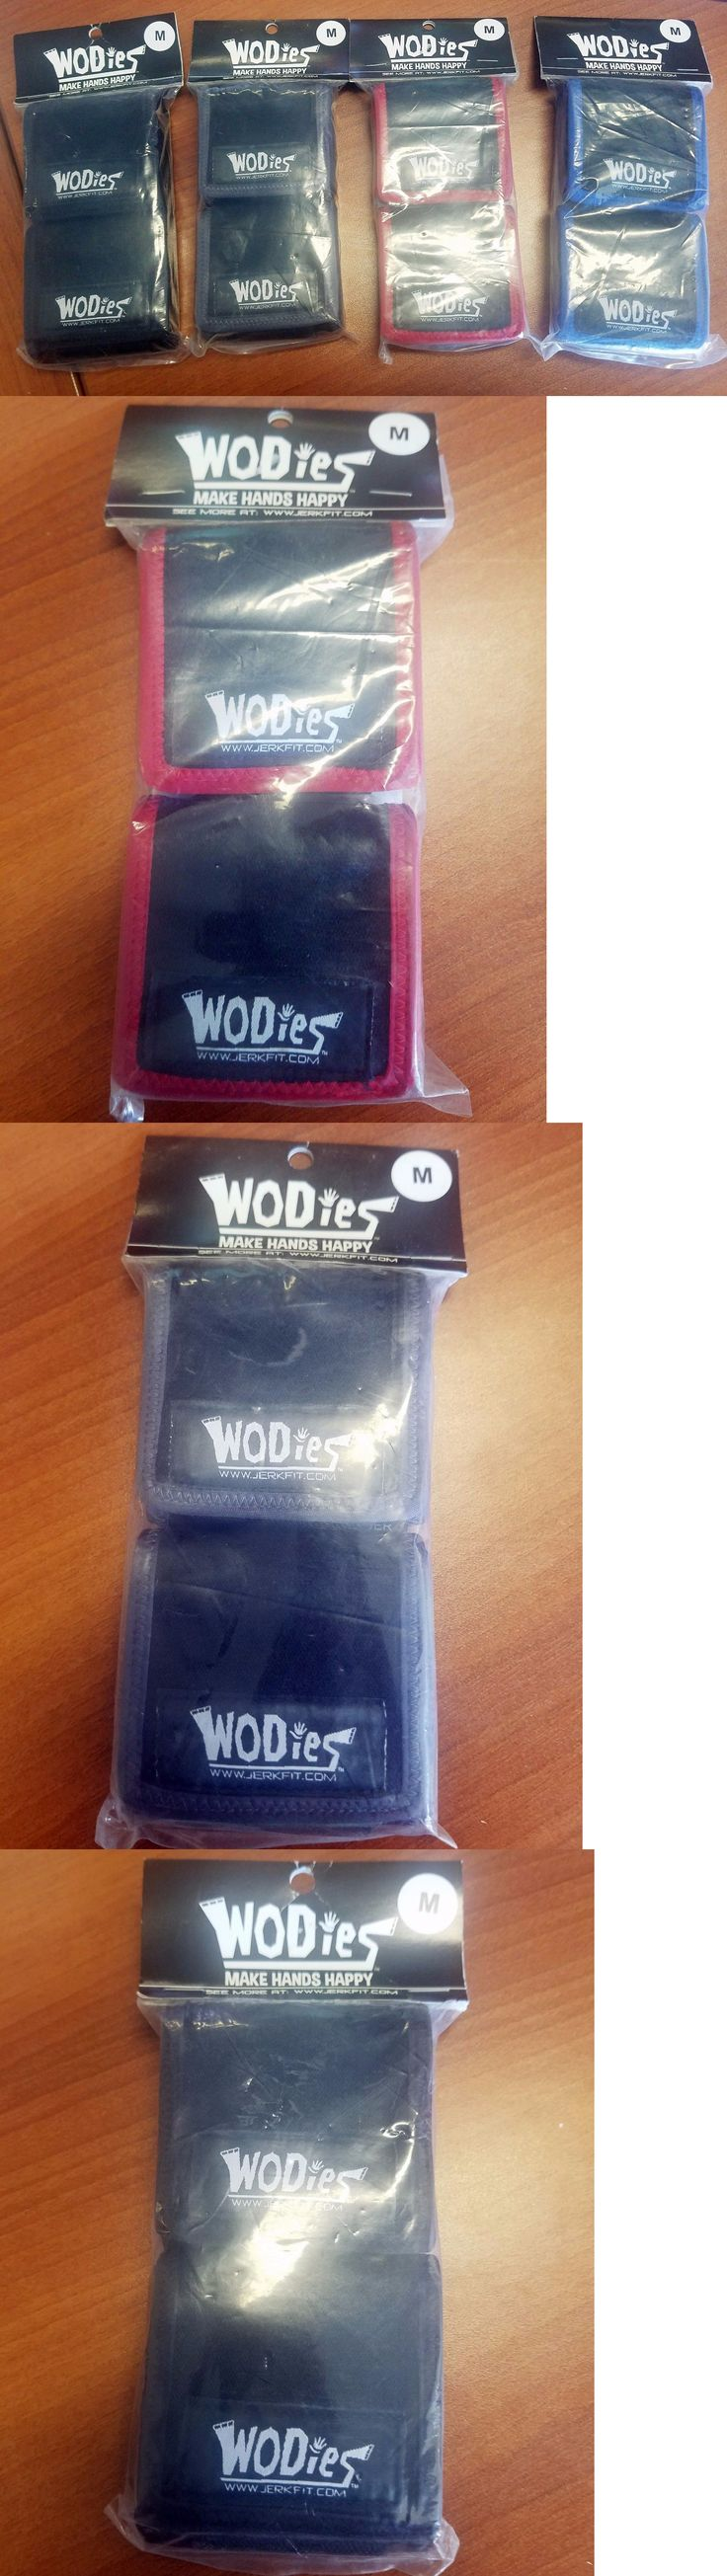 Gloves Straps and Hooks 179820: Jerkfit Wodies 2-In-1 Wrist Wraps Palm Protection Wod Cross Training Crossfit M -> BUY IT NOW ONLY: $34.99 on eBay!